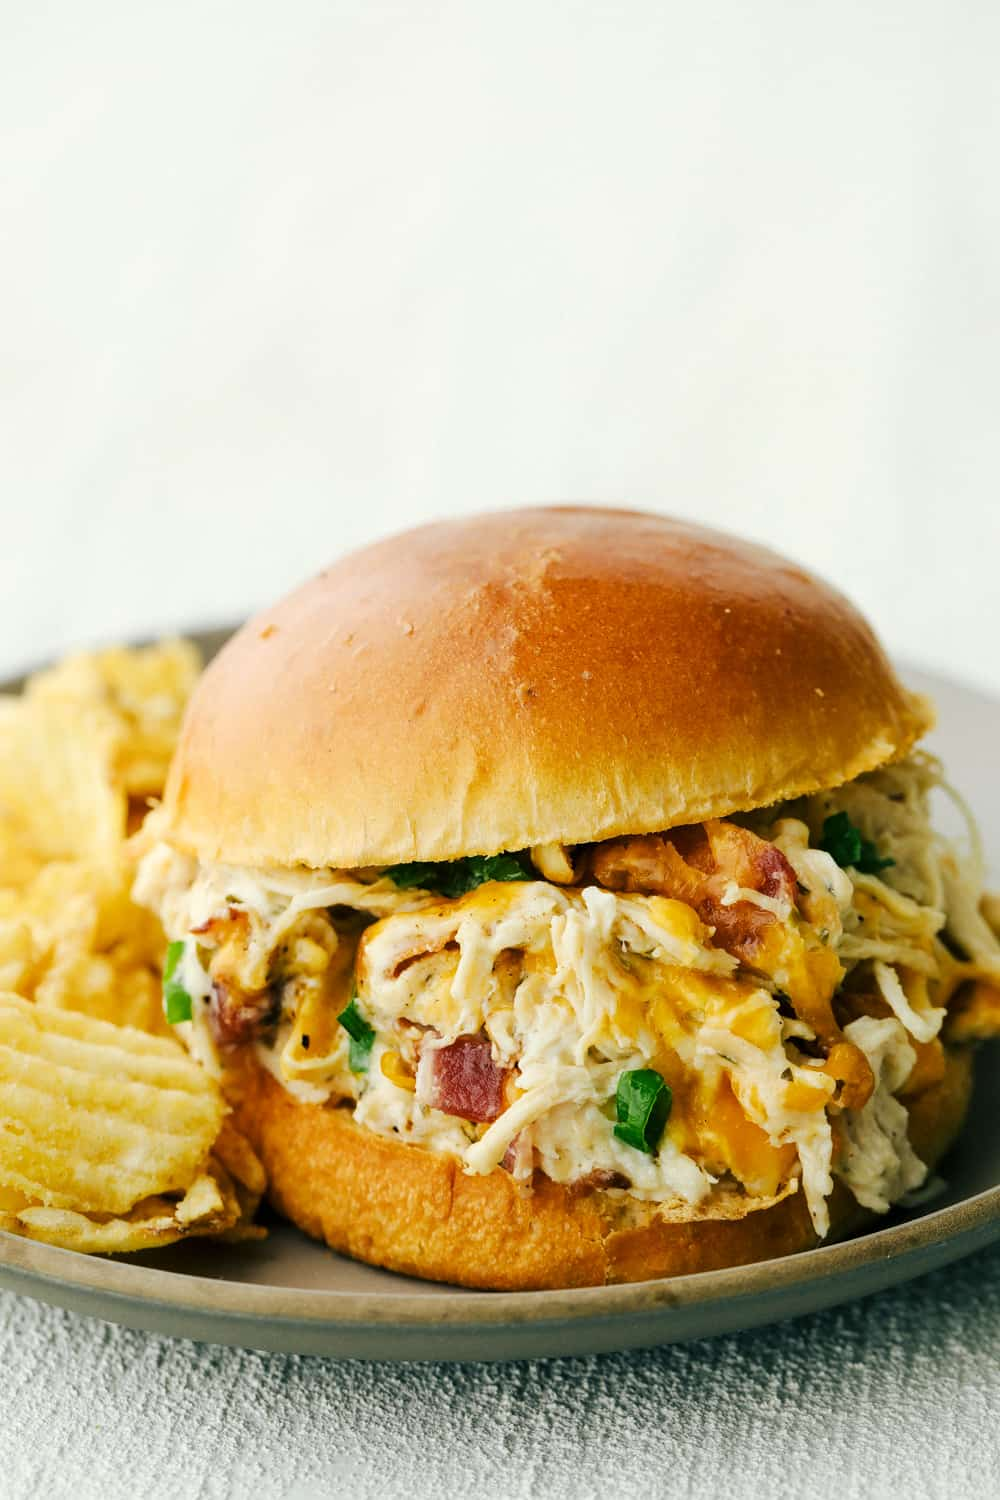 Creamy, rich addicting Slow Cooker Crack Chicken with cheddar, bacon and ranch on a bun.